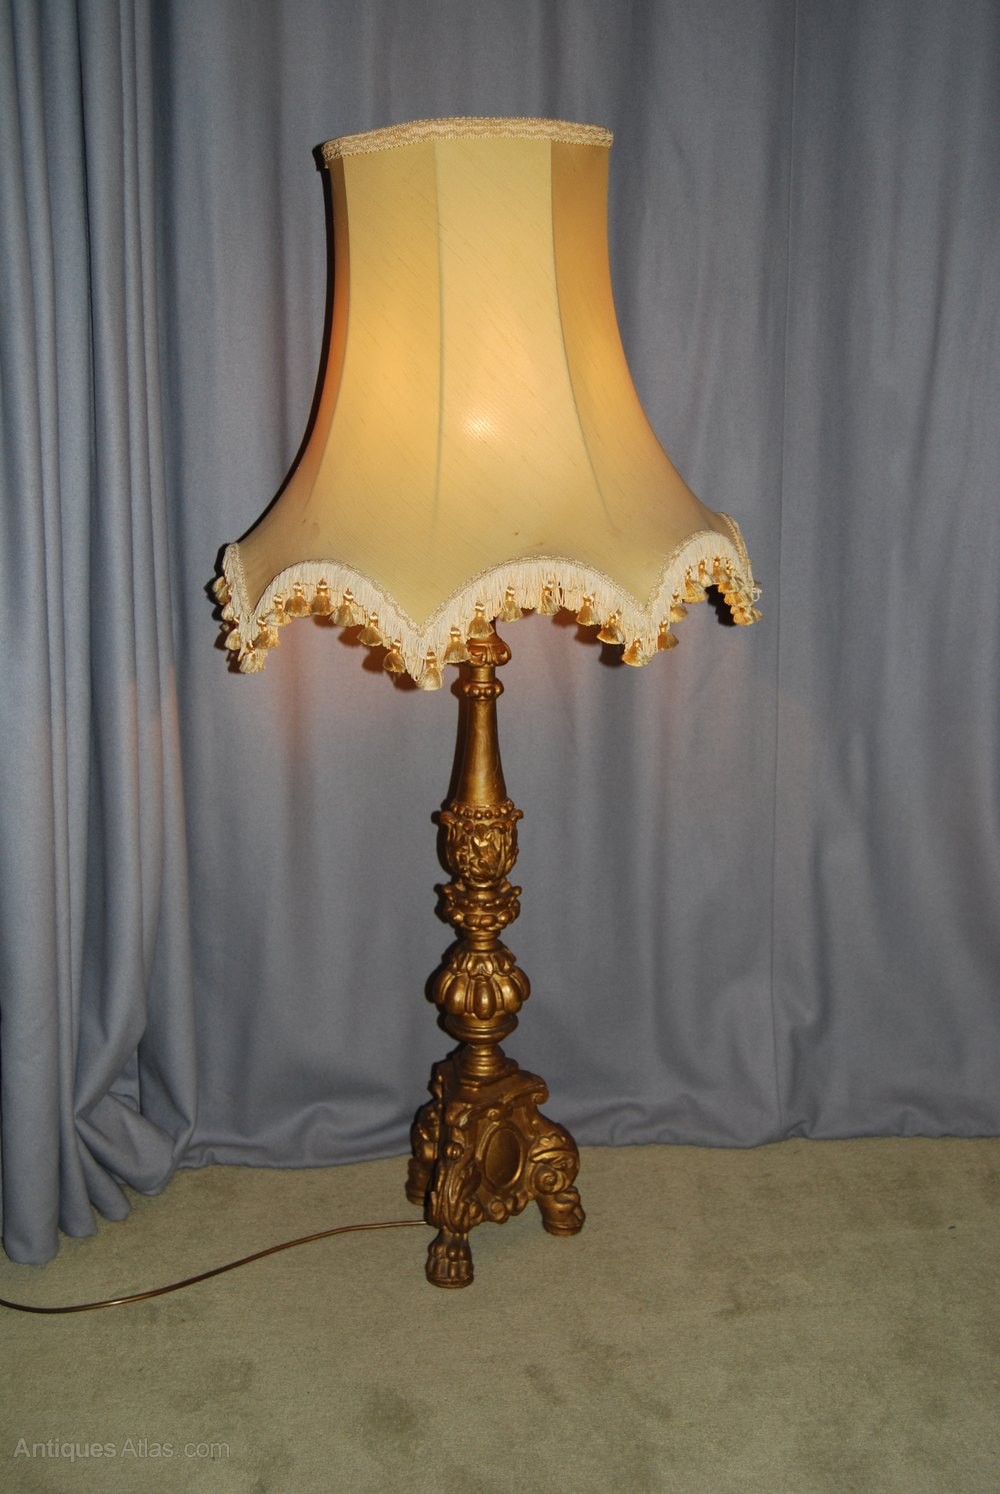 Antiques Atlas 19th C Giltwood Oil Lamp Stand Now Electric